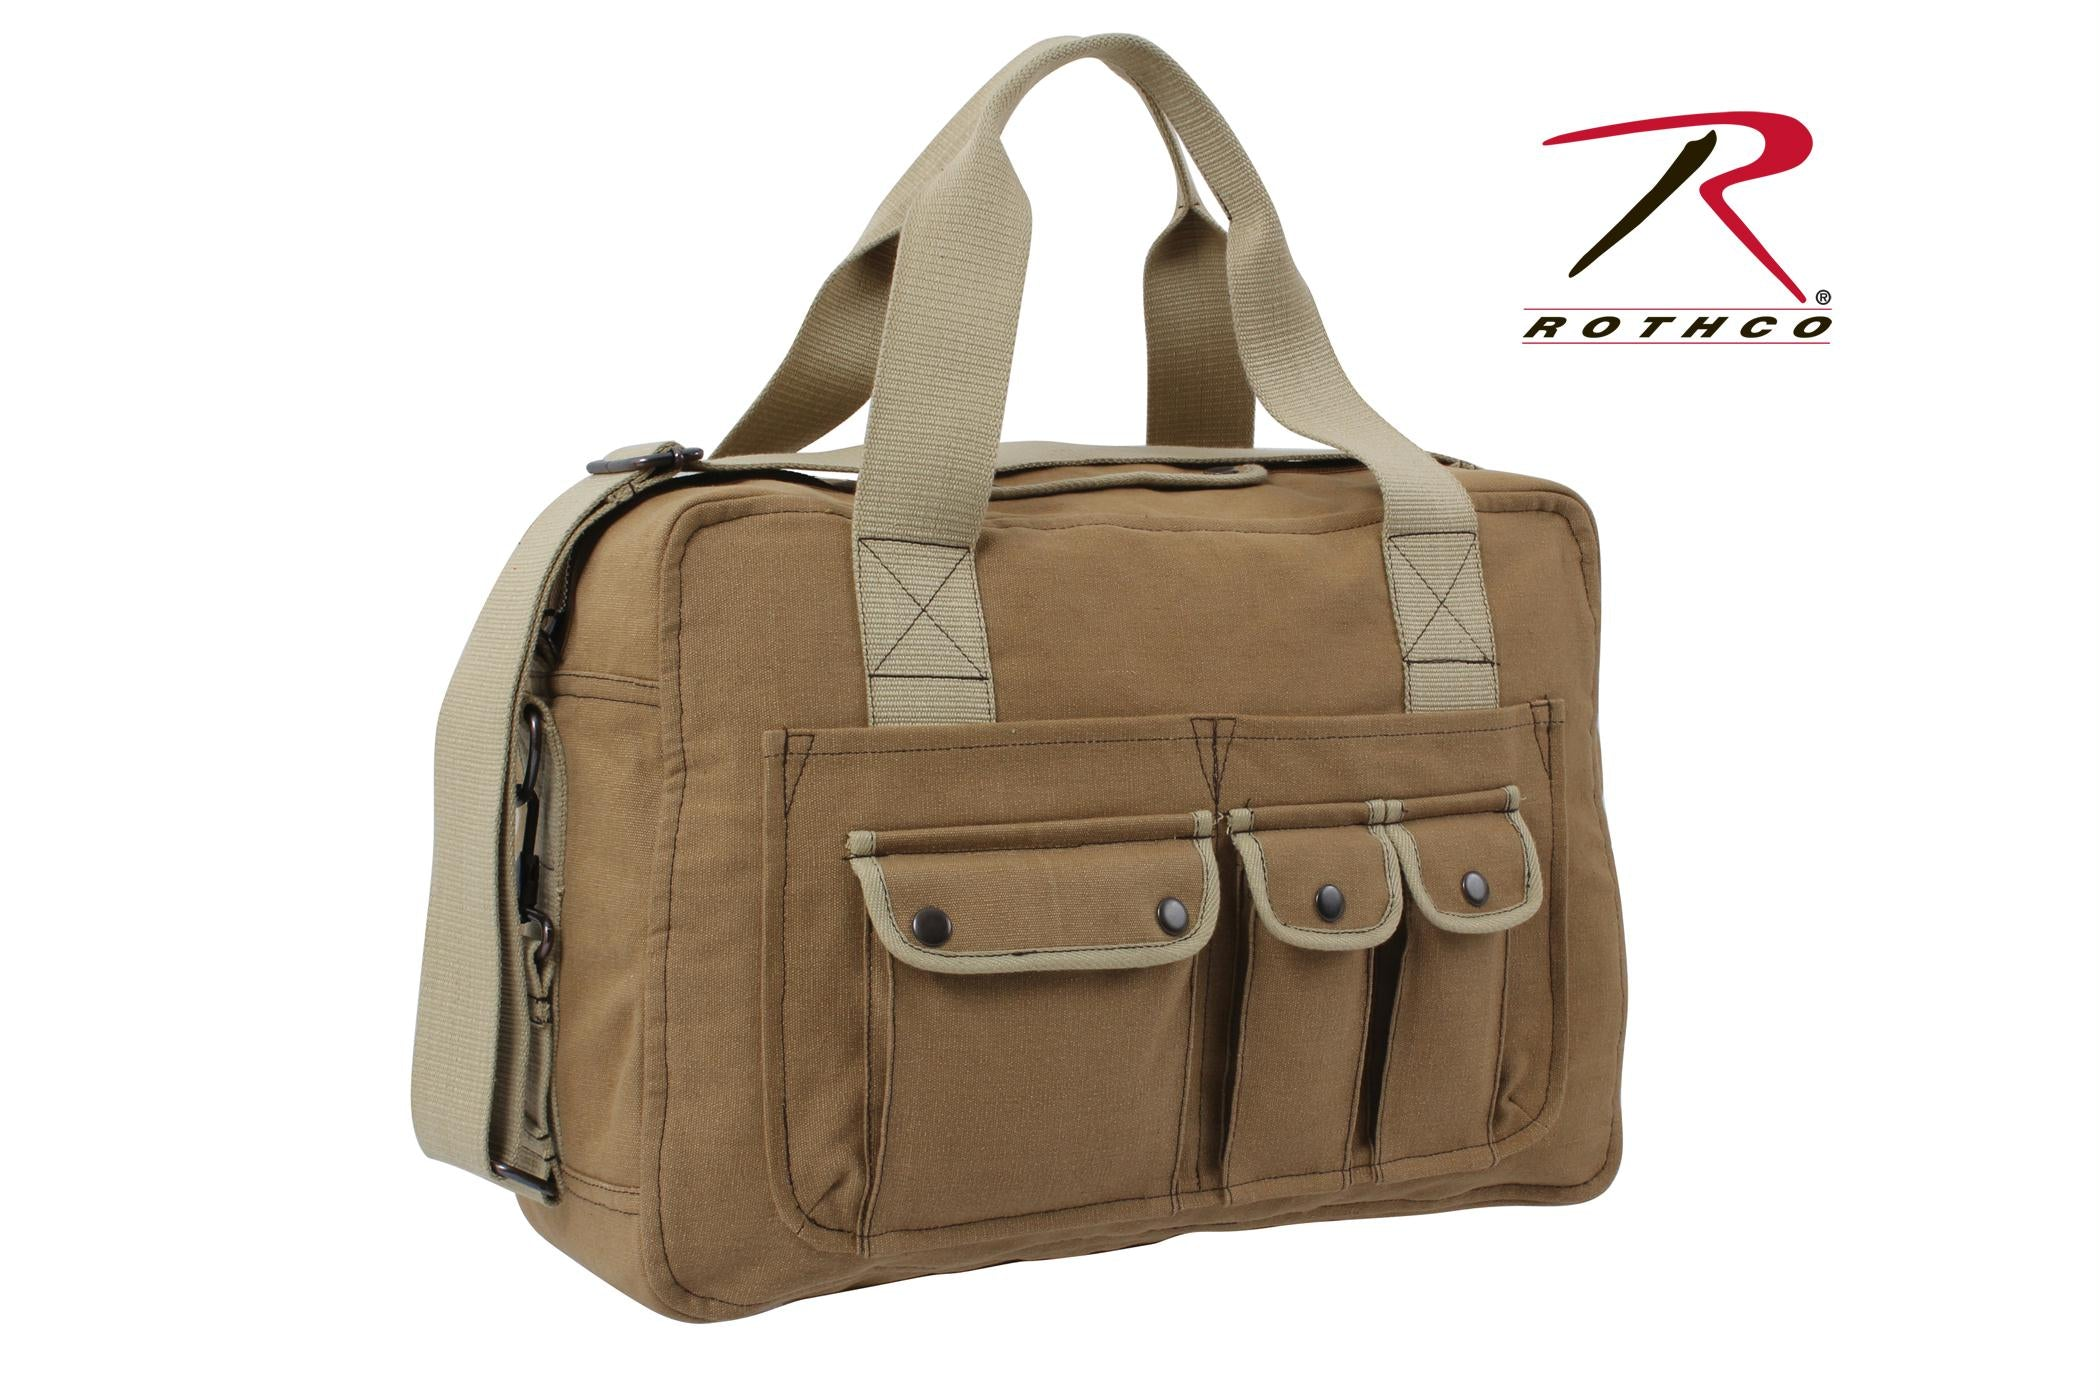 Rothco Two Tone Specialist Carry All Shoulder Bag - Coyote Brown